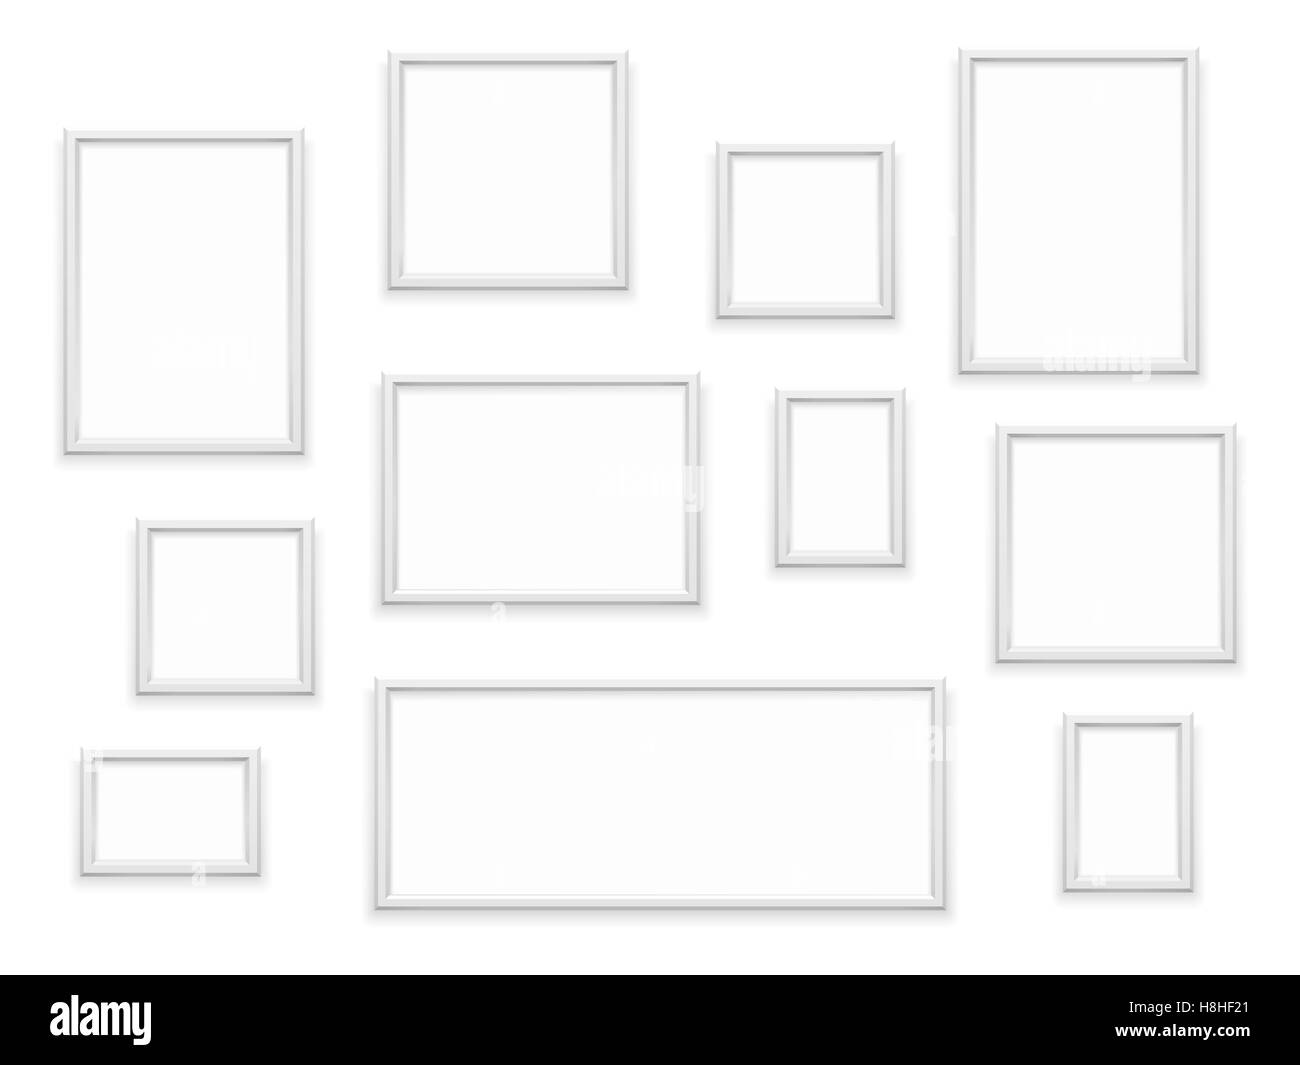 Set of white photo frames - Stock Image